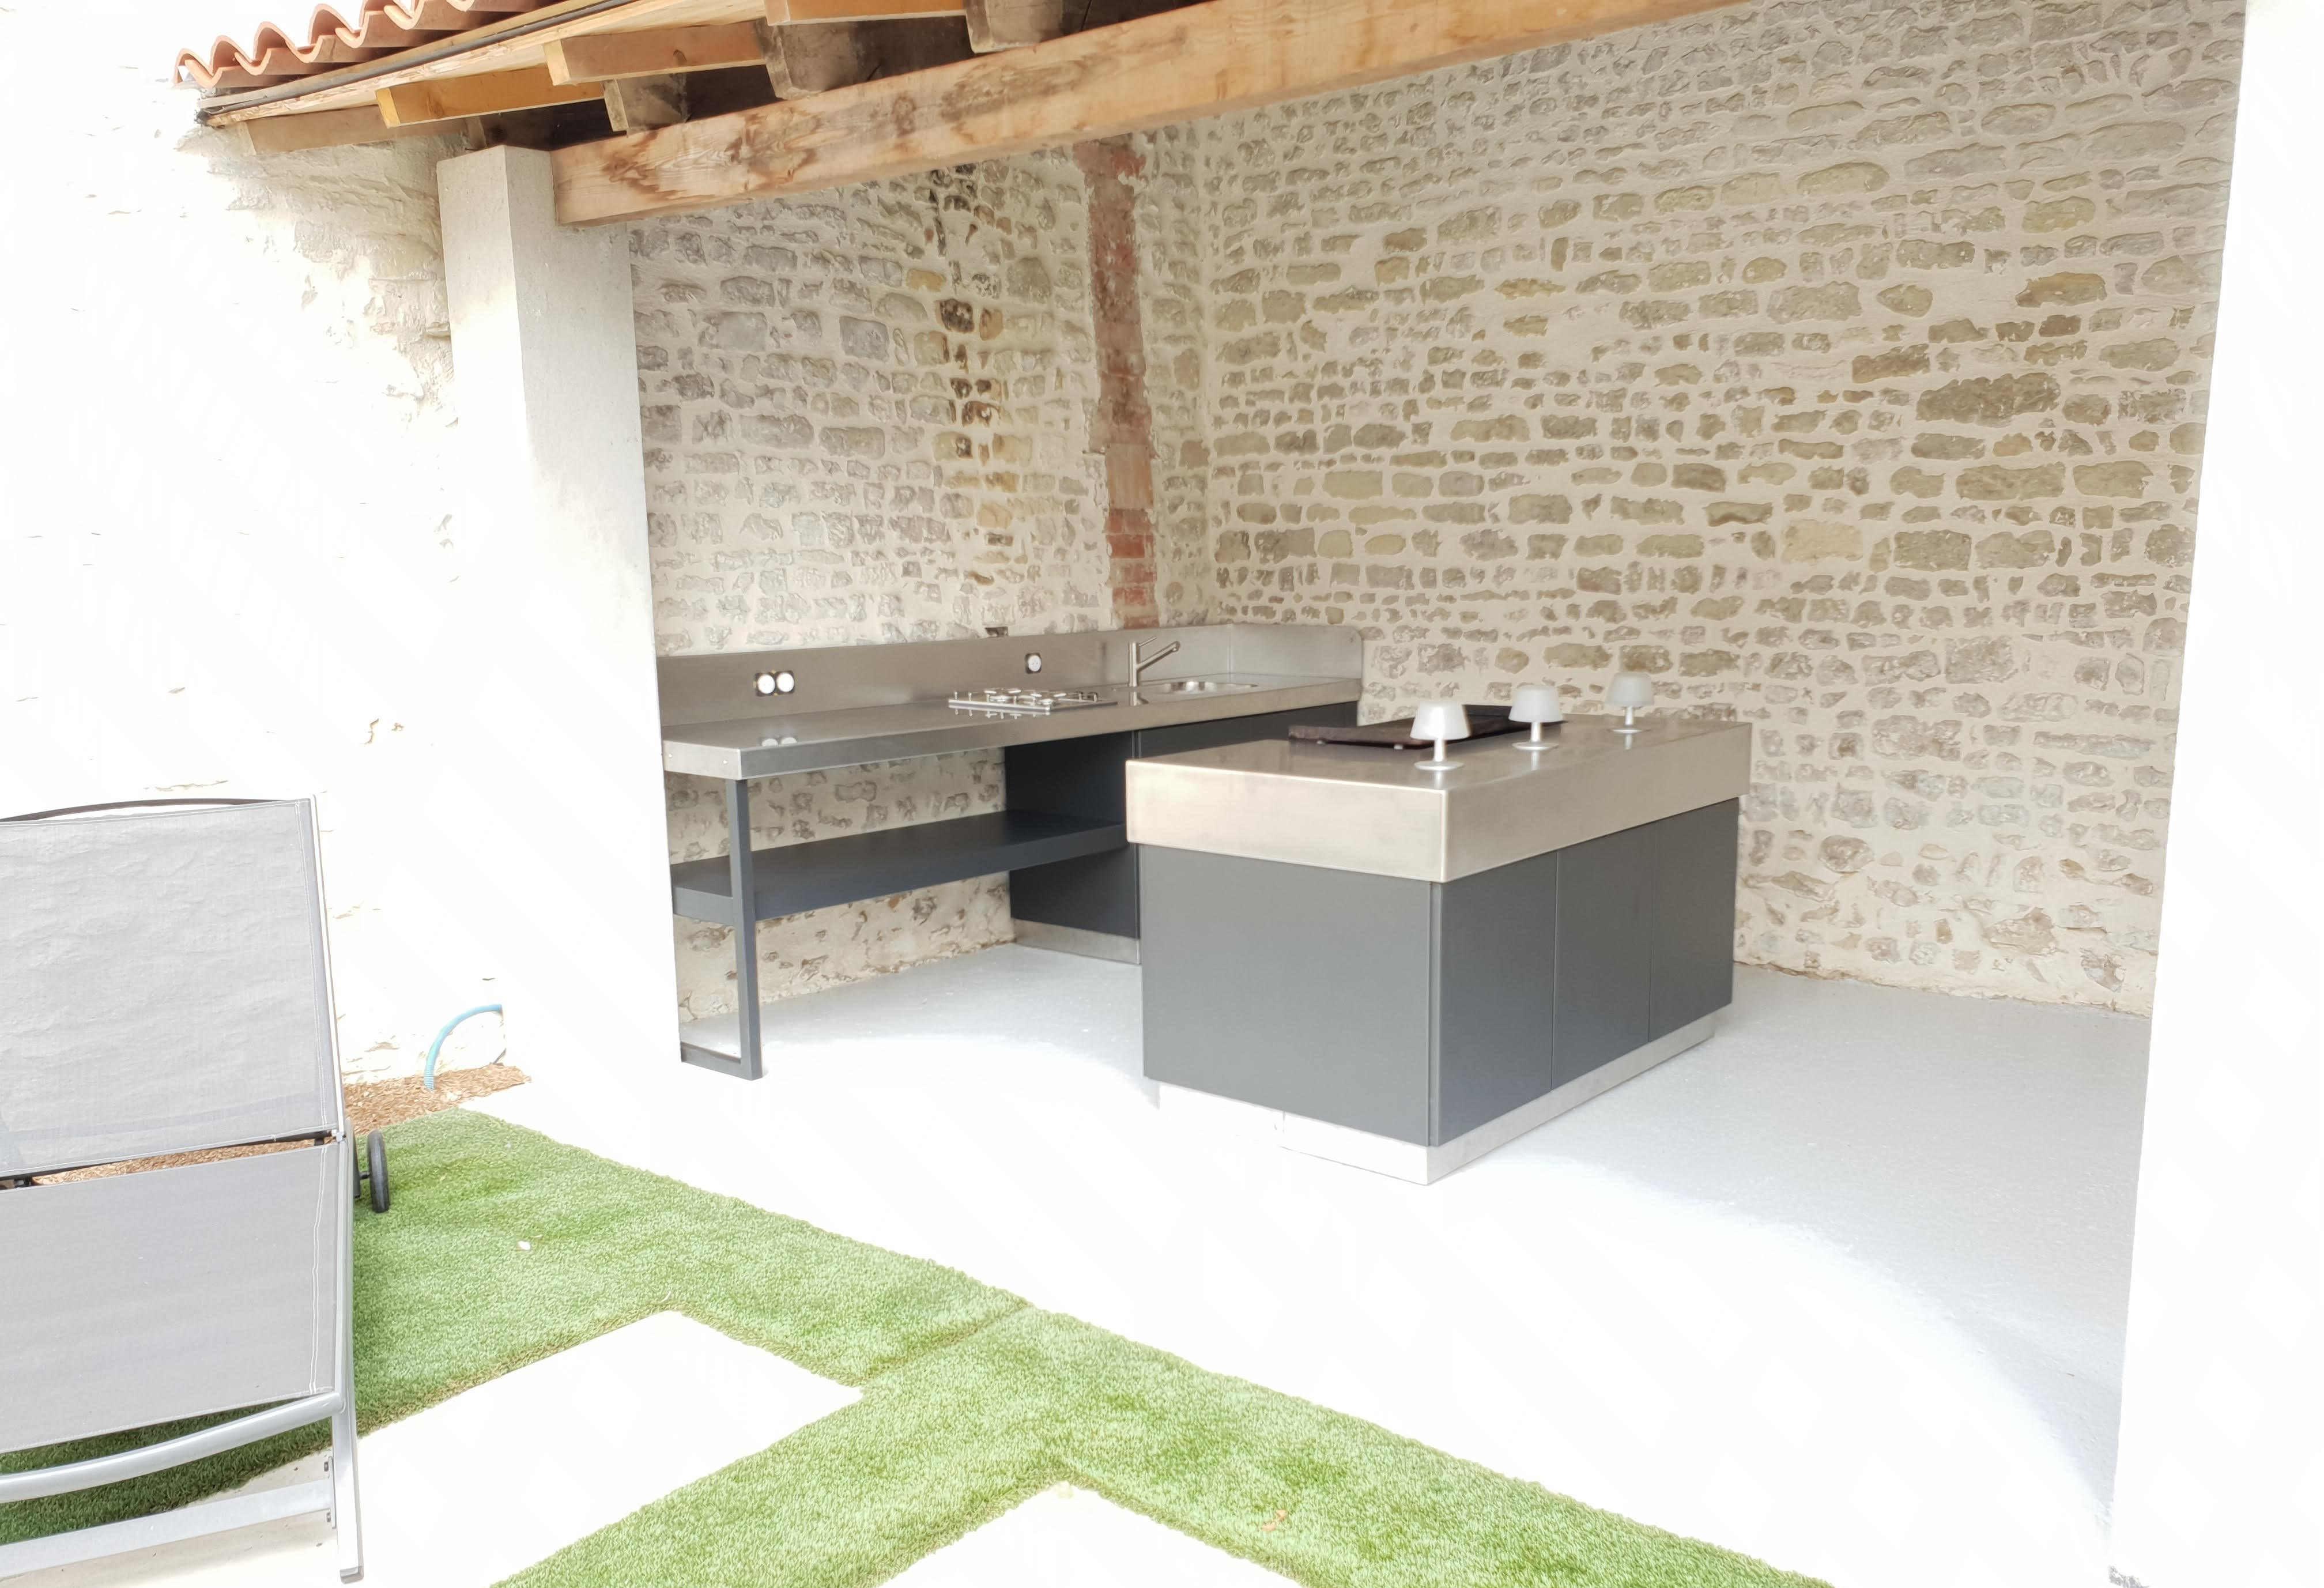 Ma Cuisine Exterieure Sur Mesure By Atlantic Inox Made In France